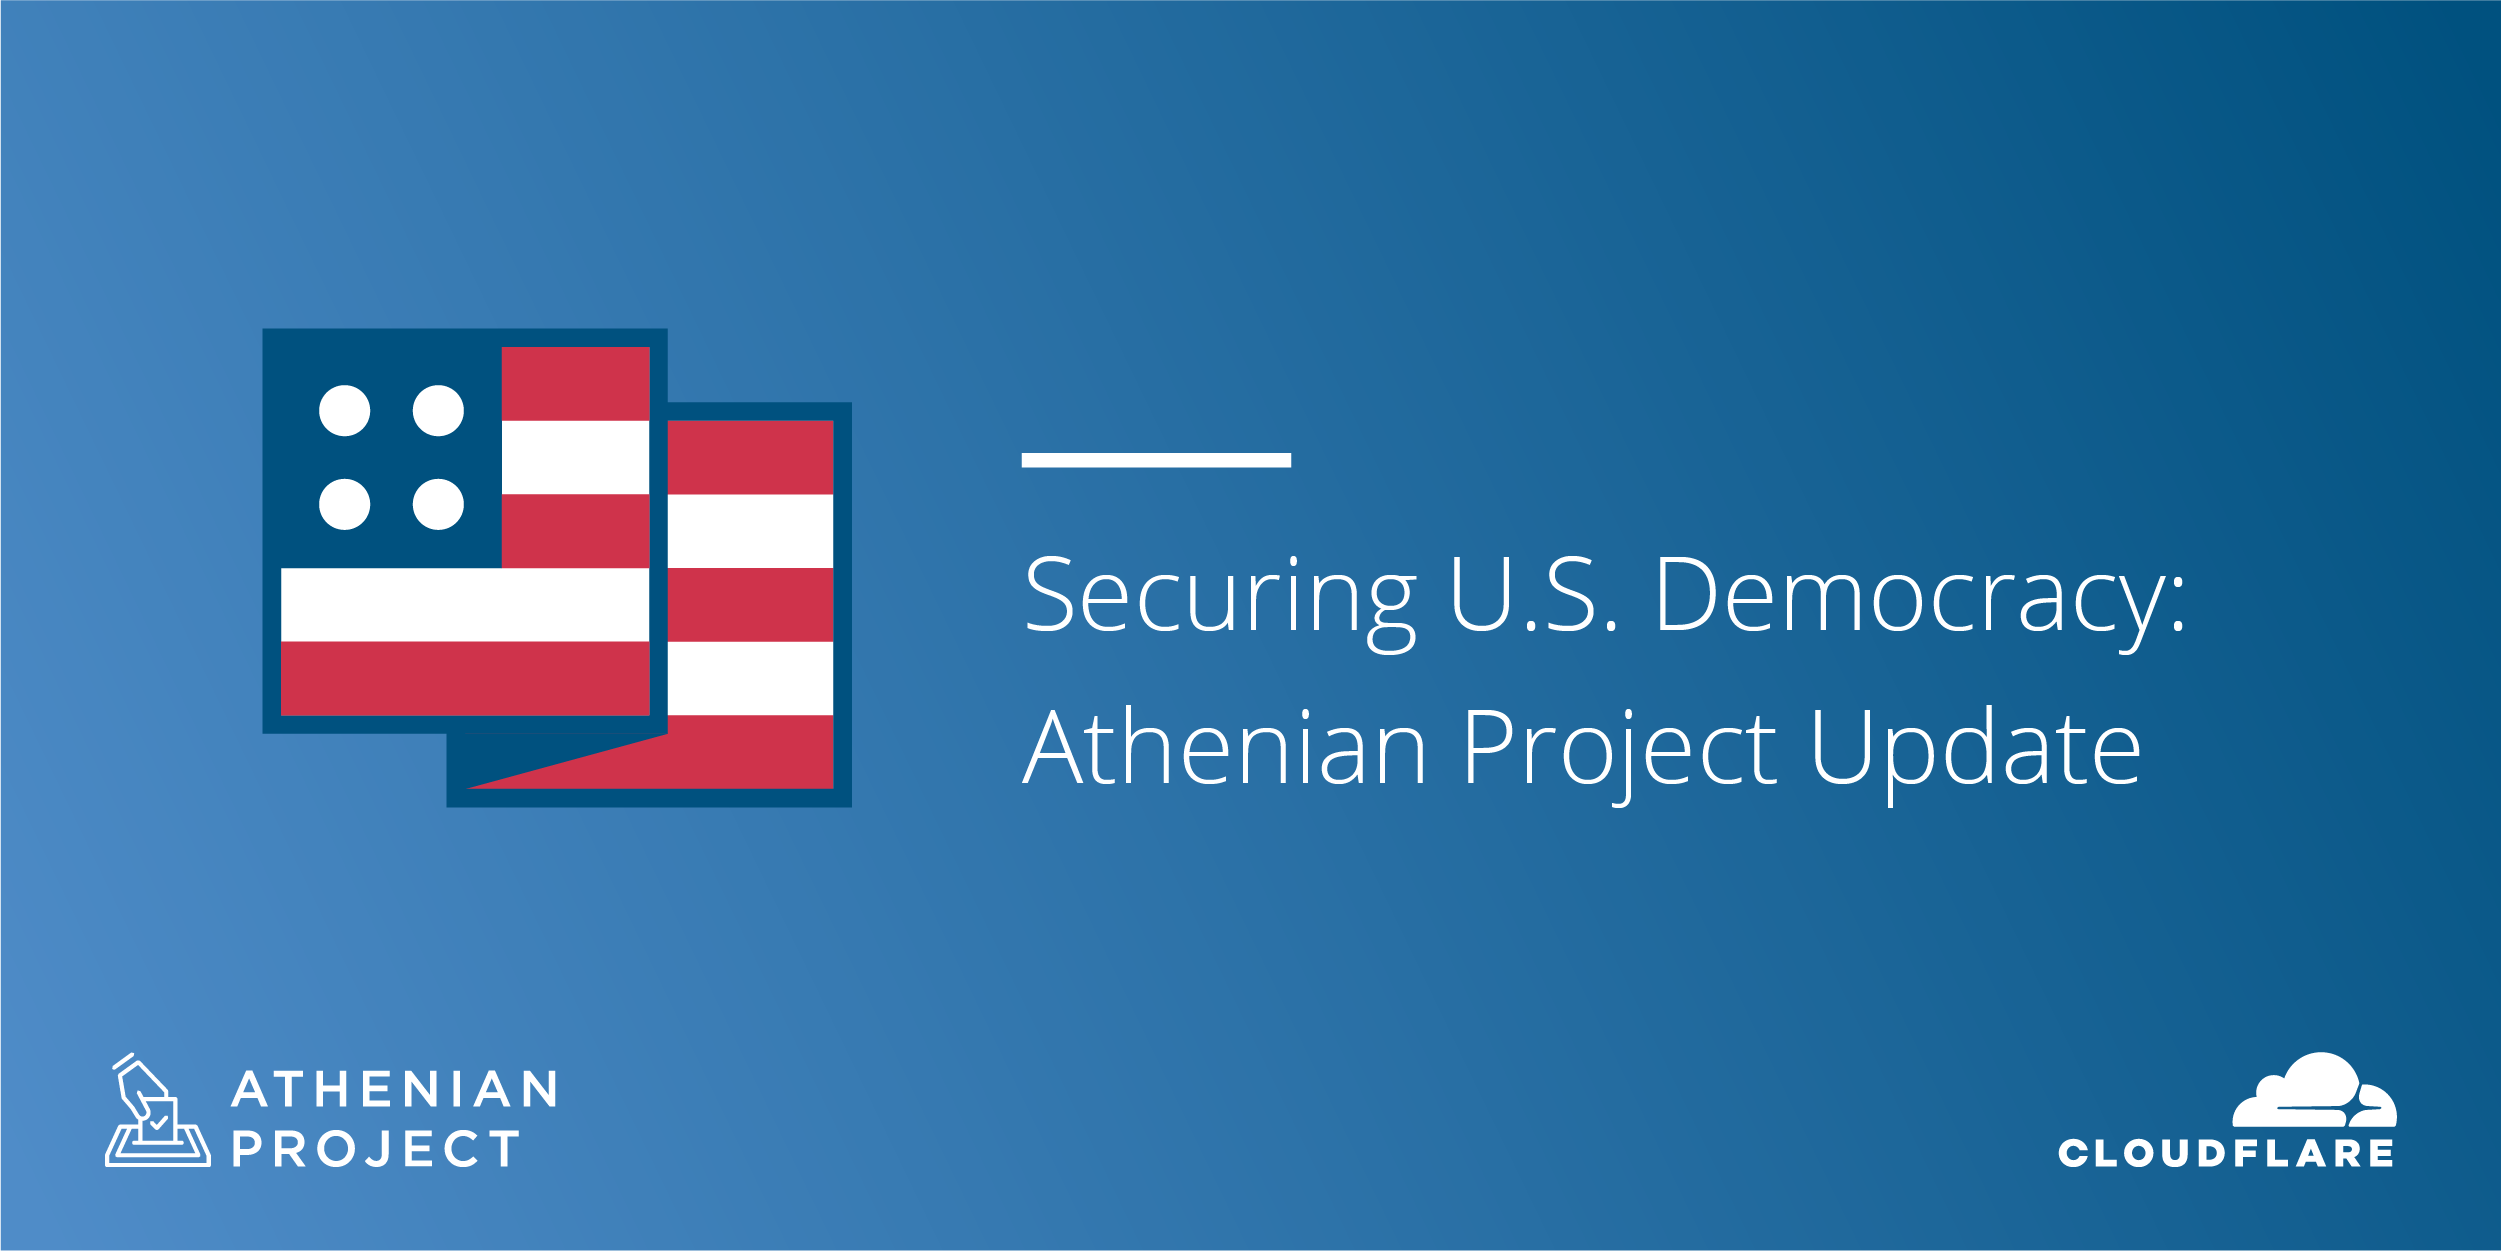 Athenian Project Update